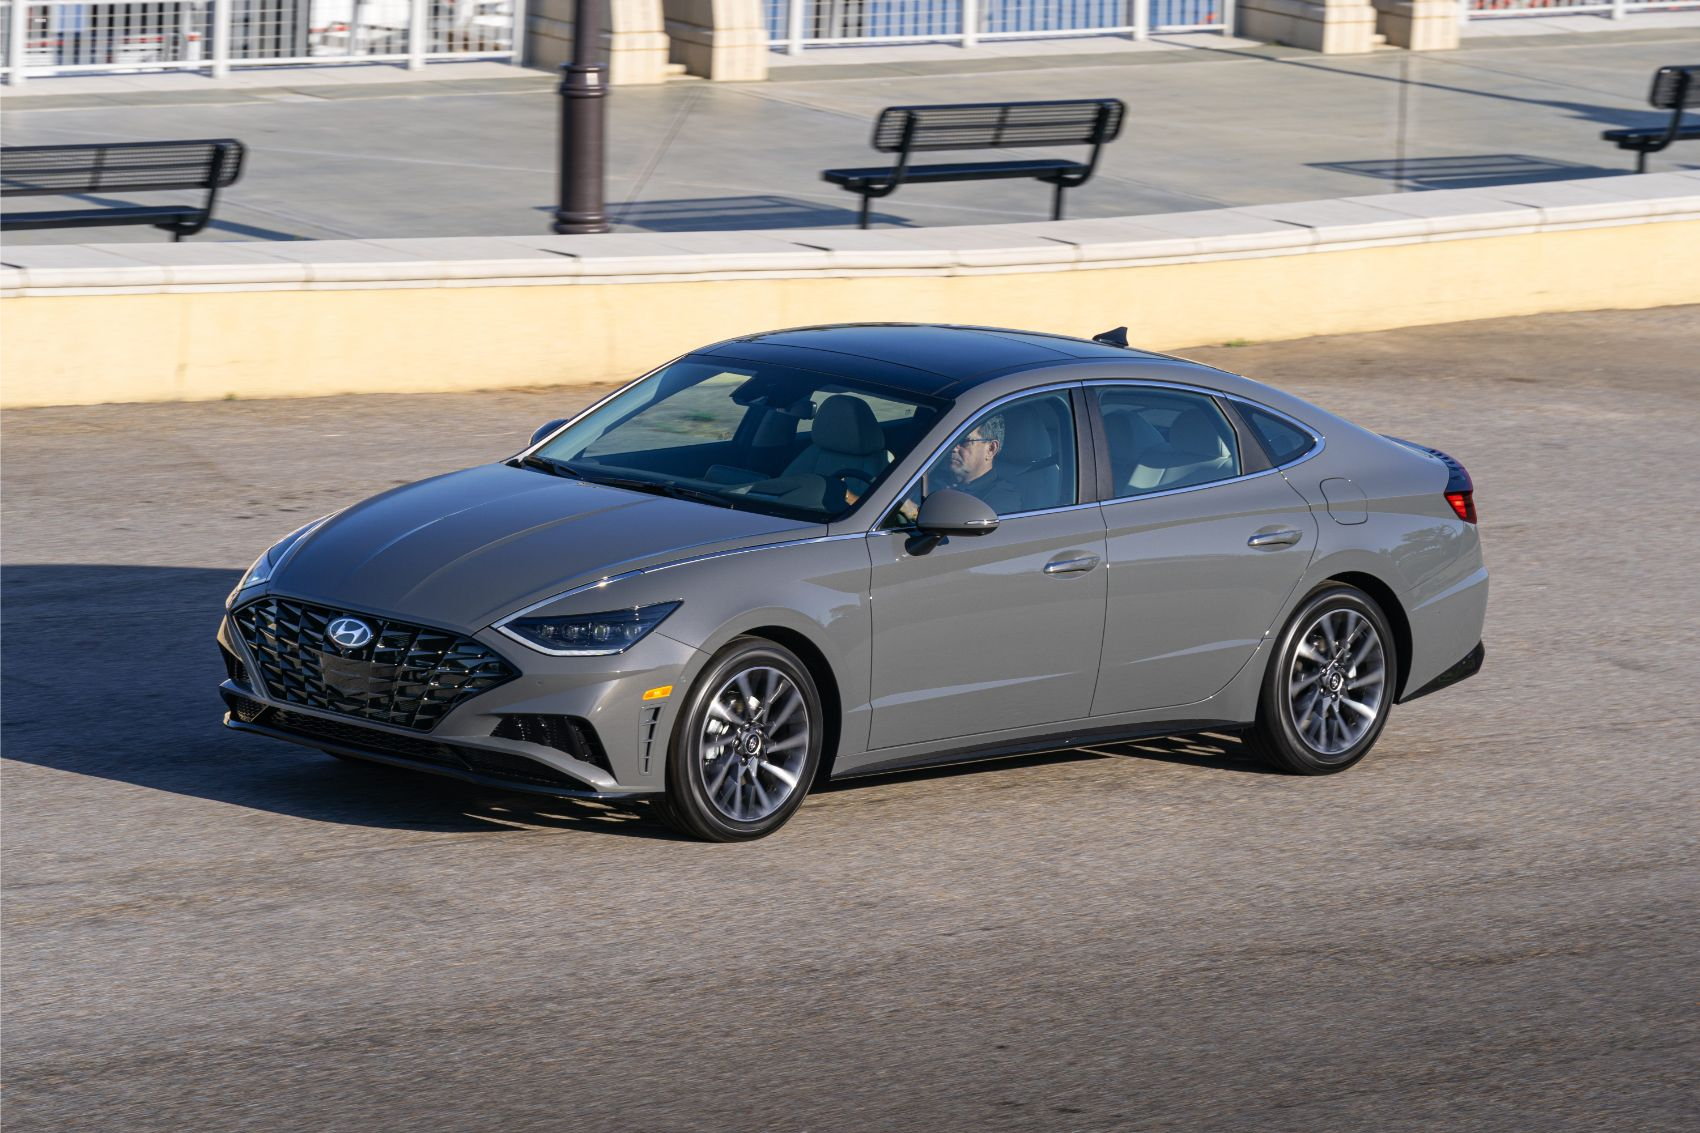 New 2021 Hyundai Sonata Limited Edition, 2.0T Specs, Lease ...